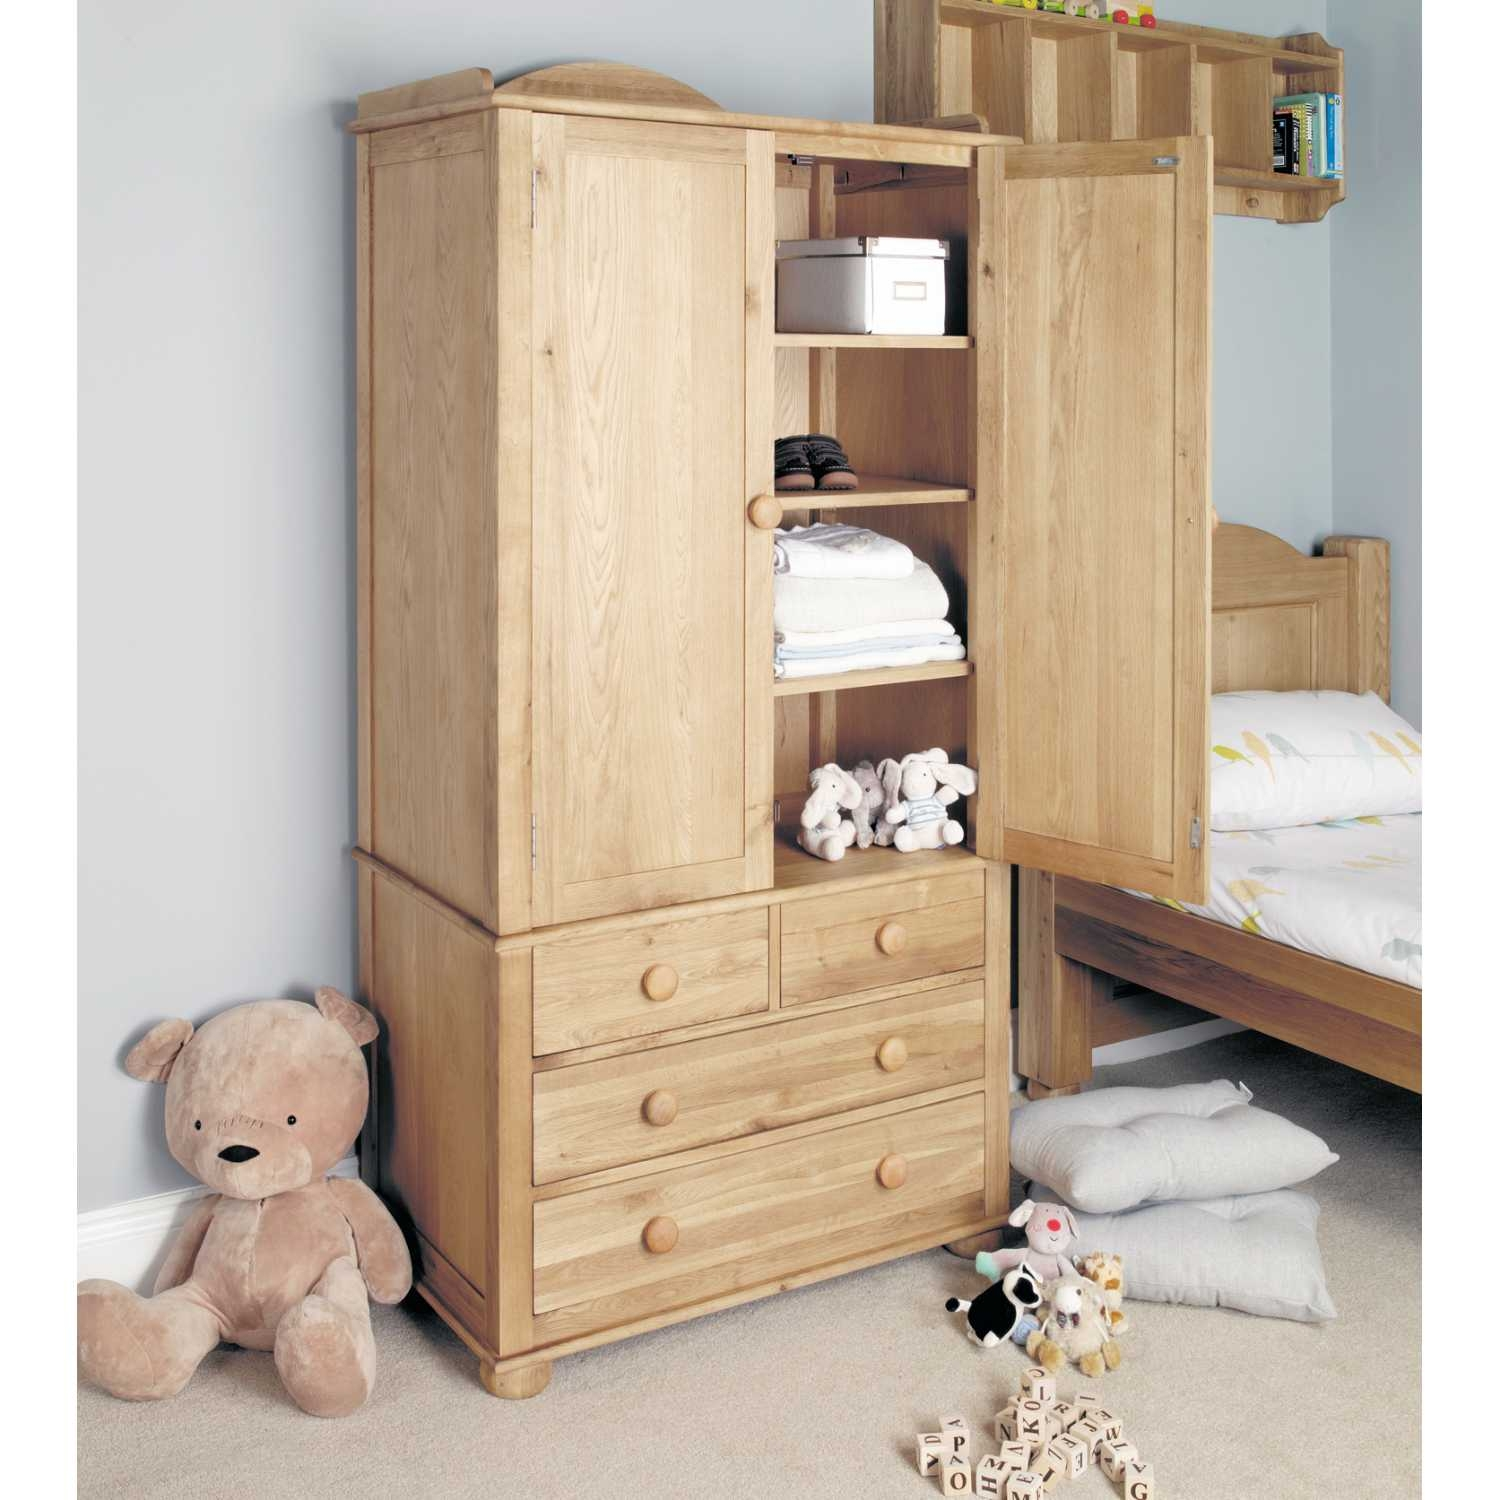 Popular Photo of Wardrobe With Drawers And Shelves